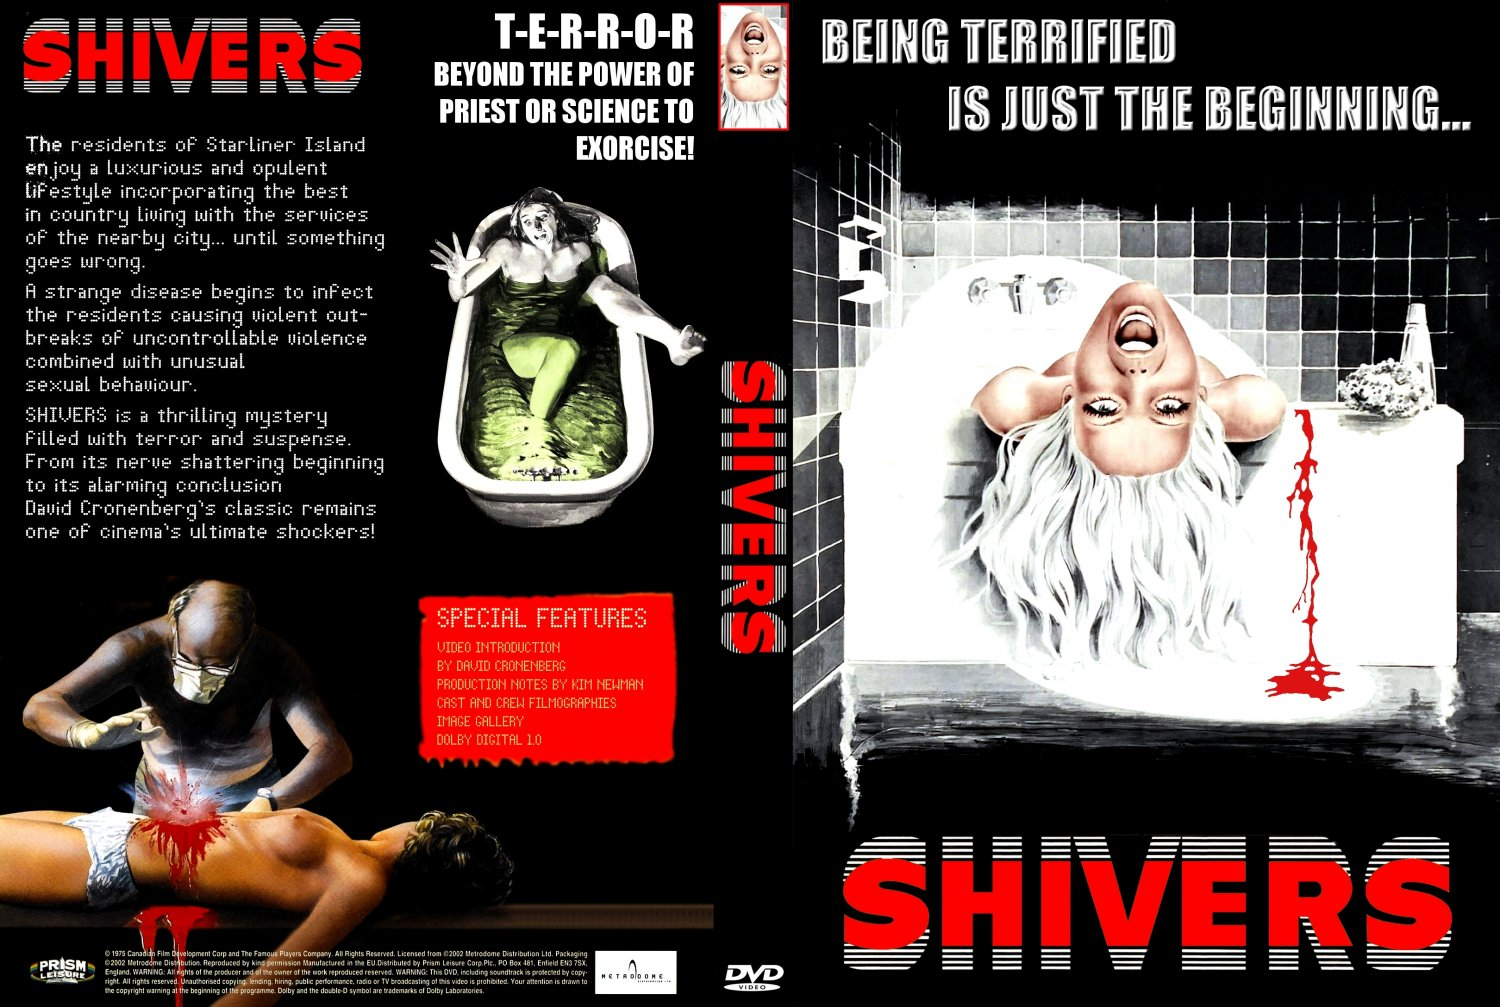 Shivers - Movie DVD Custom Covers - Shivers1 :: DVD Covers